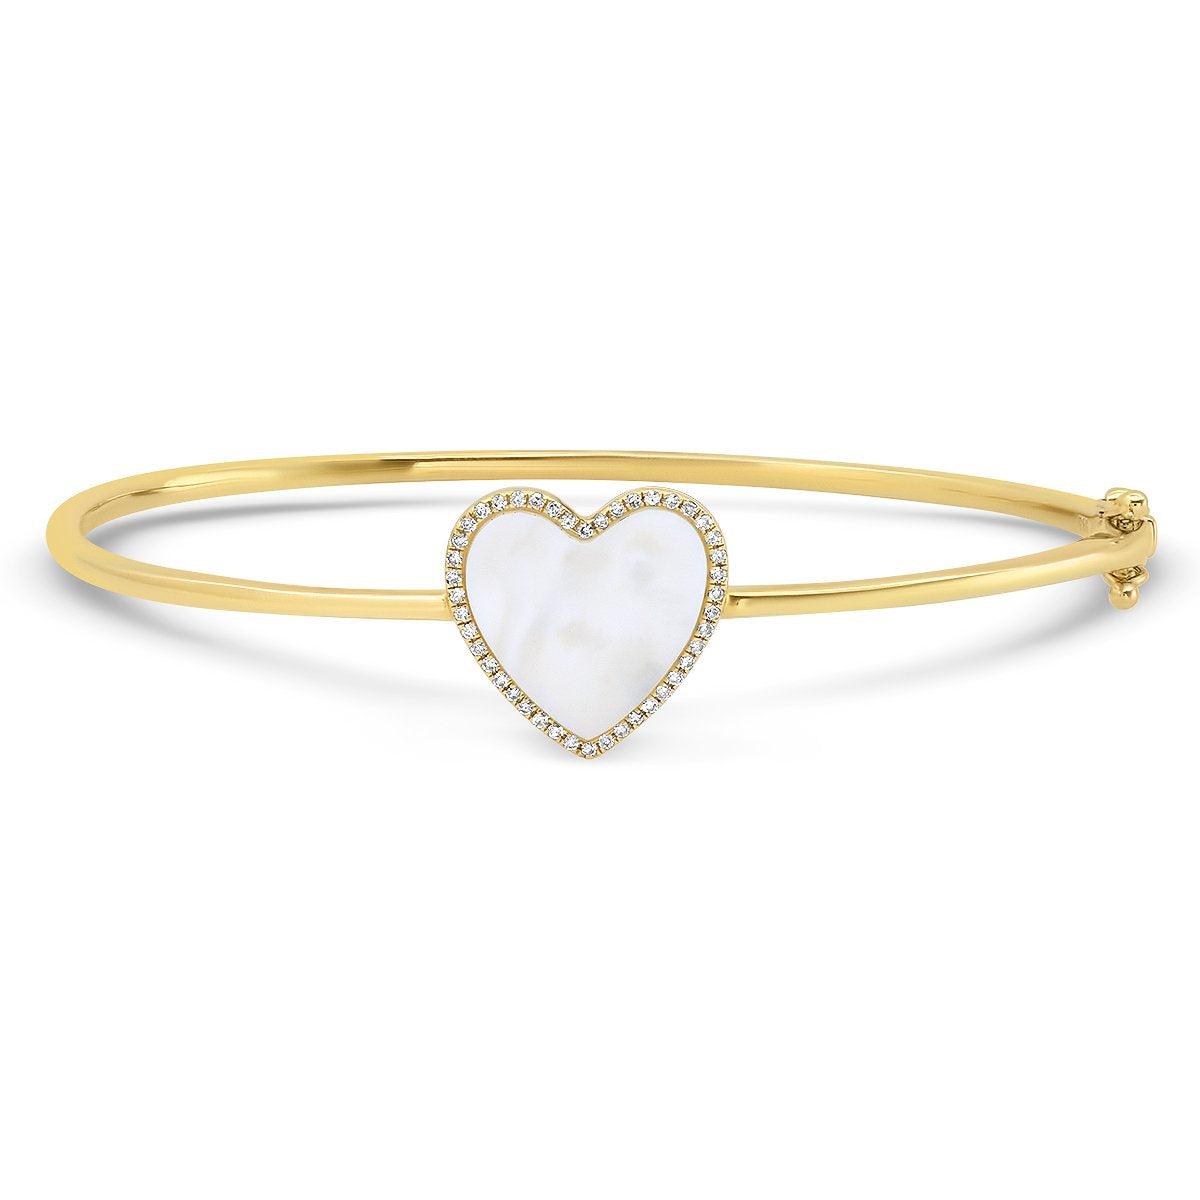 Inlay Heart with Diamond Frame Hinge Bangle